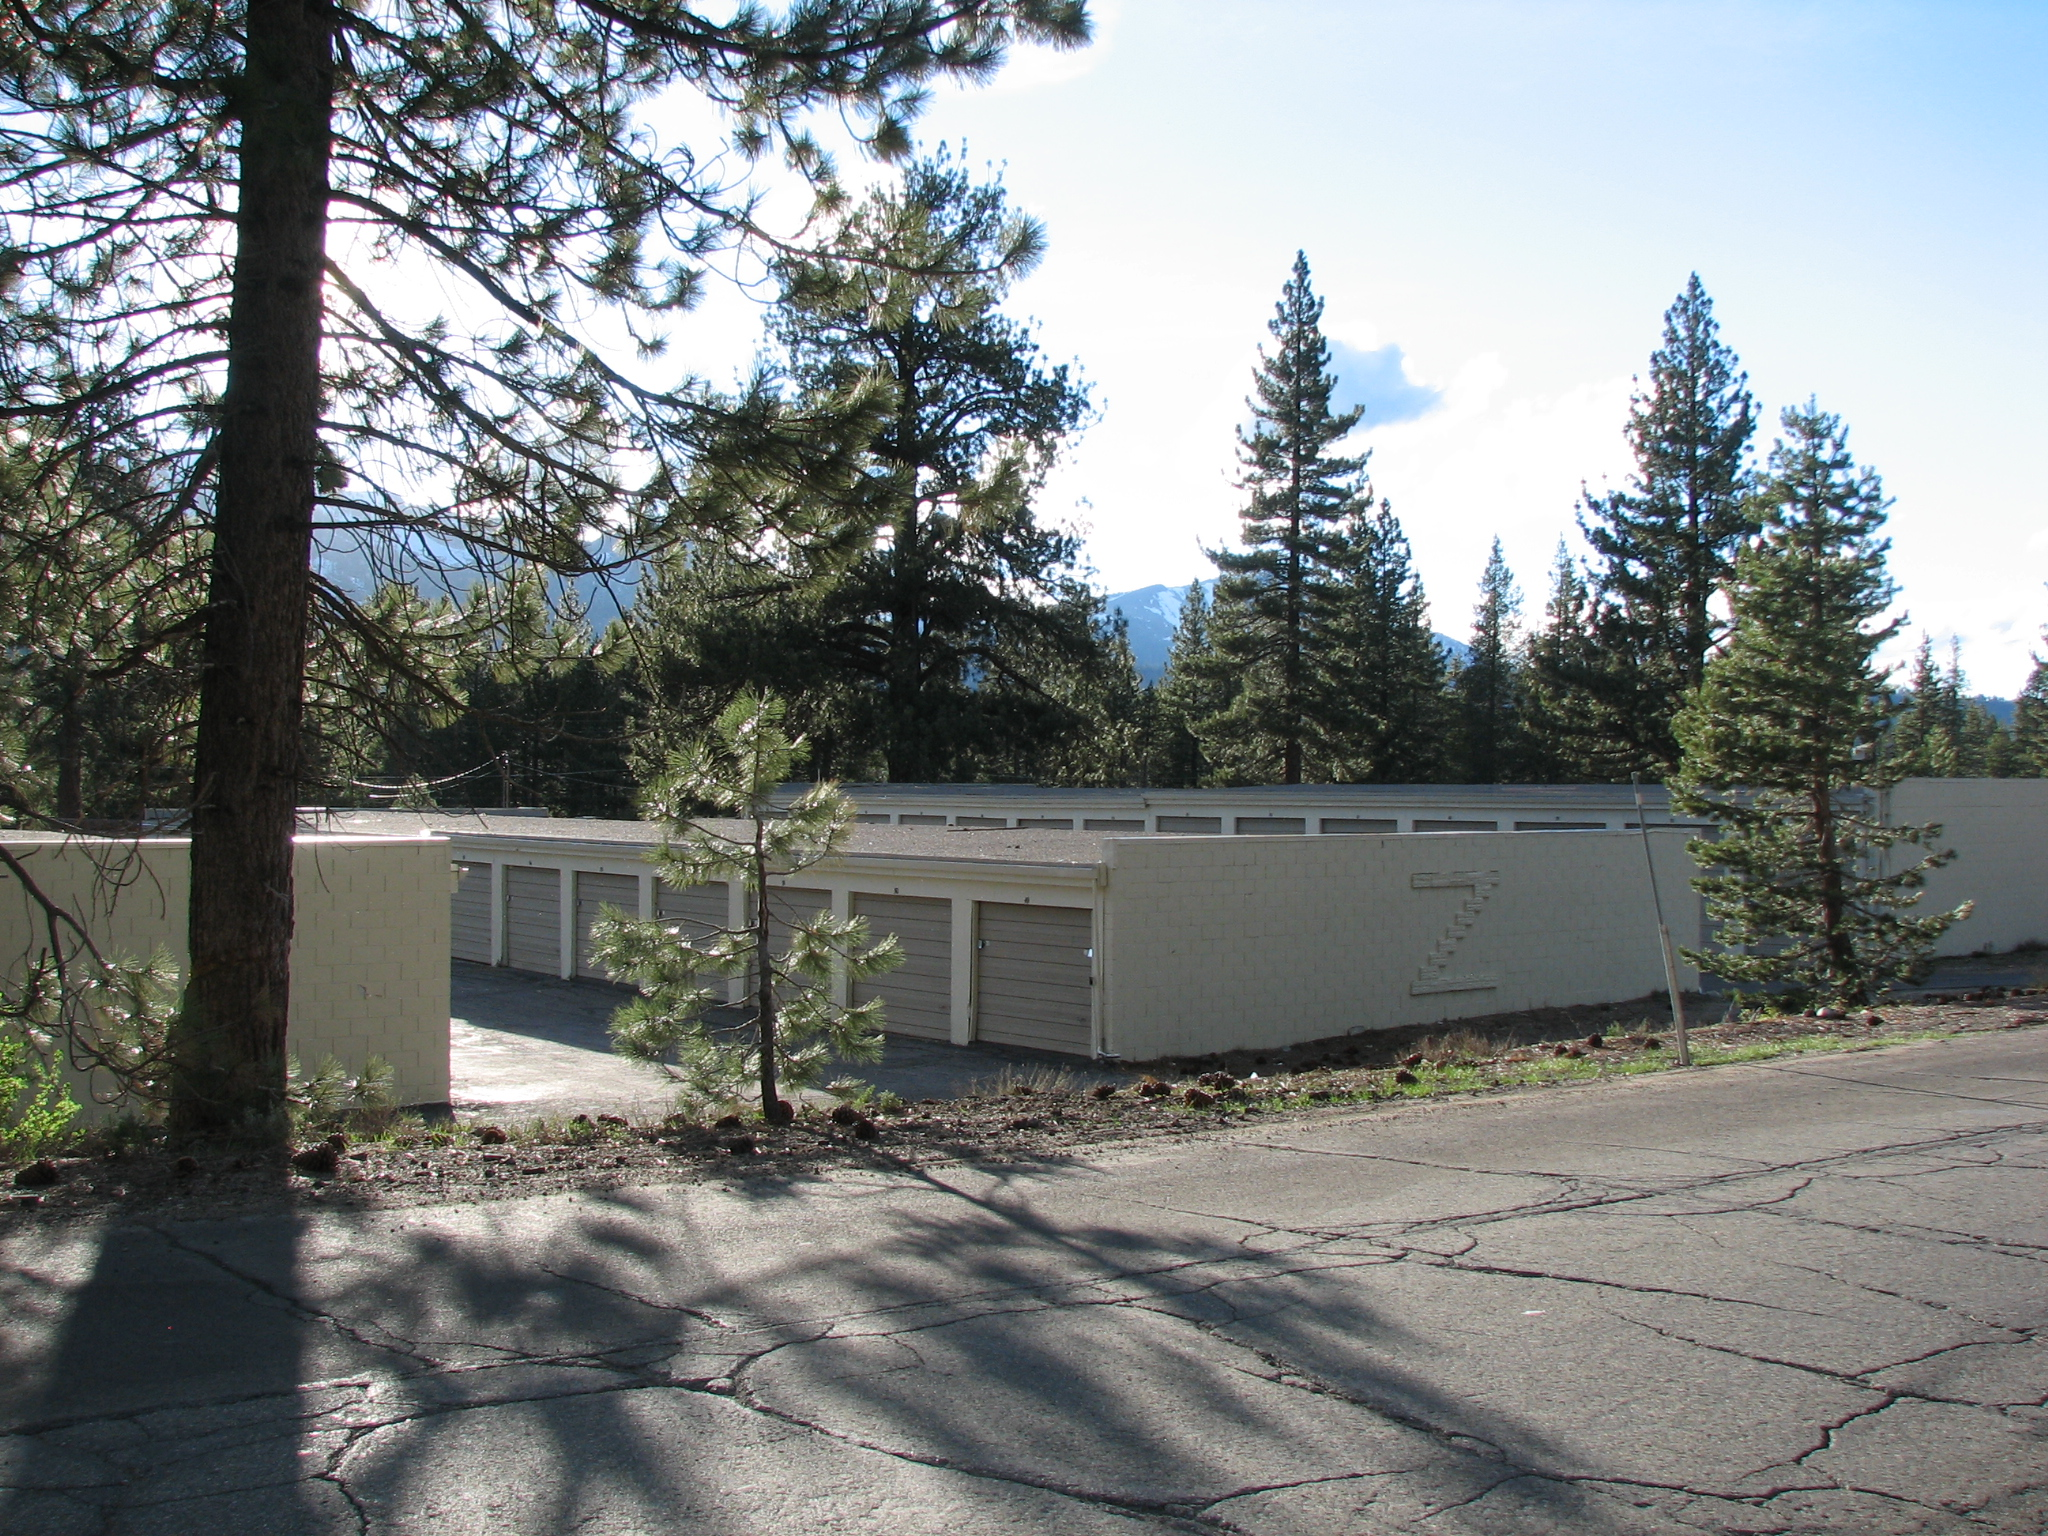 South Lake Tahoe Mini Storage 1071 Shakori Drive South Lake Tahoe, CA  Phone: 530 542 3434. Fax: 530 542 3535